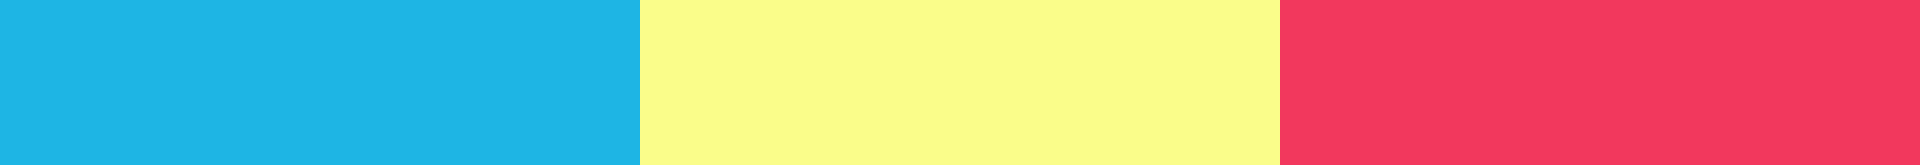 Varient on a primary color scheme.